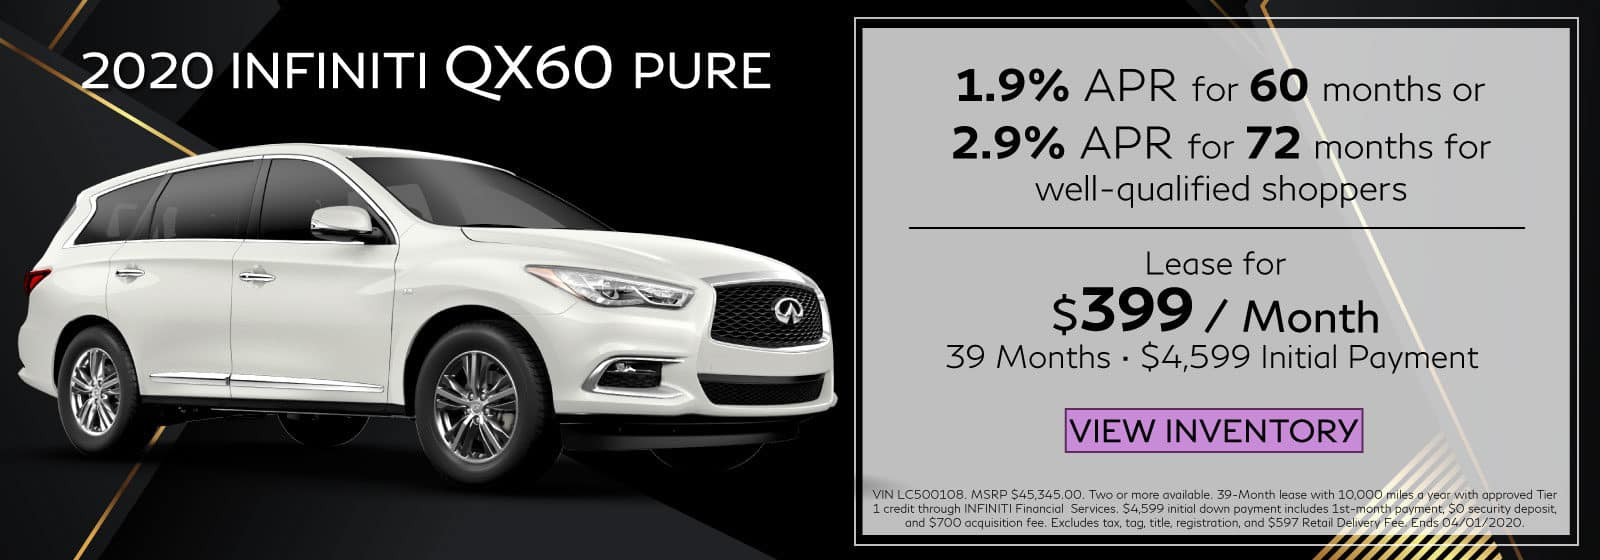 2020 QX60 PURE. $399 a month for 39 months. $4,599 initial payment. OR 1.9% APR for 60 months. White QX60 on black abstract background. View Inventory button.